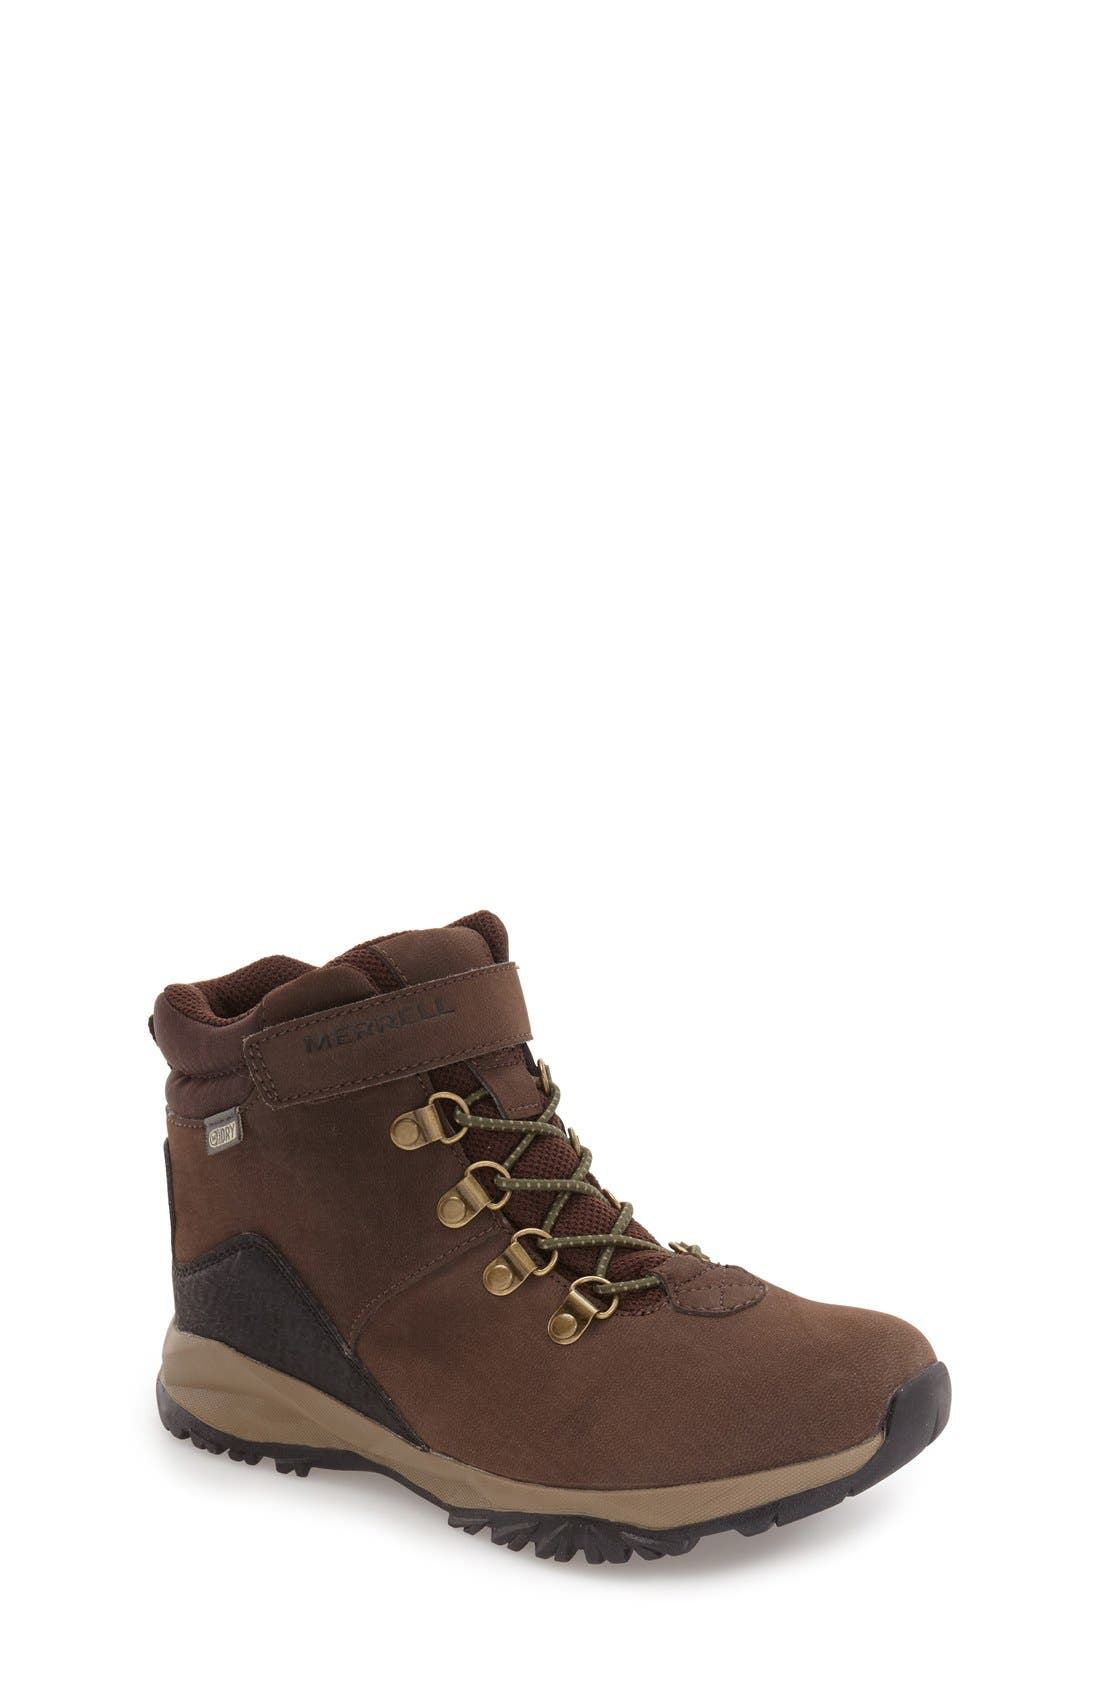 'Alpine' Waterproof Boot,                             Main thumbnail 1, color,                             BROWN LEATHER